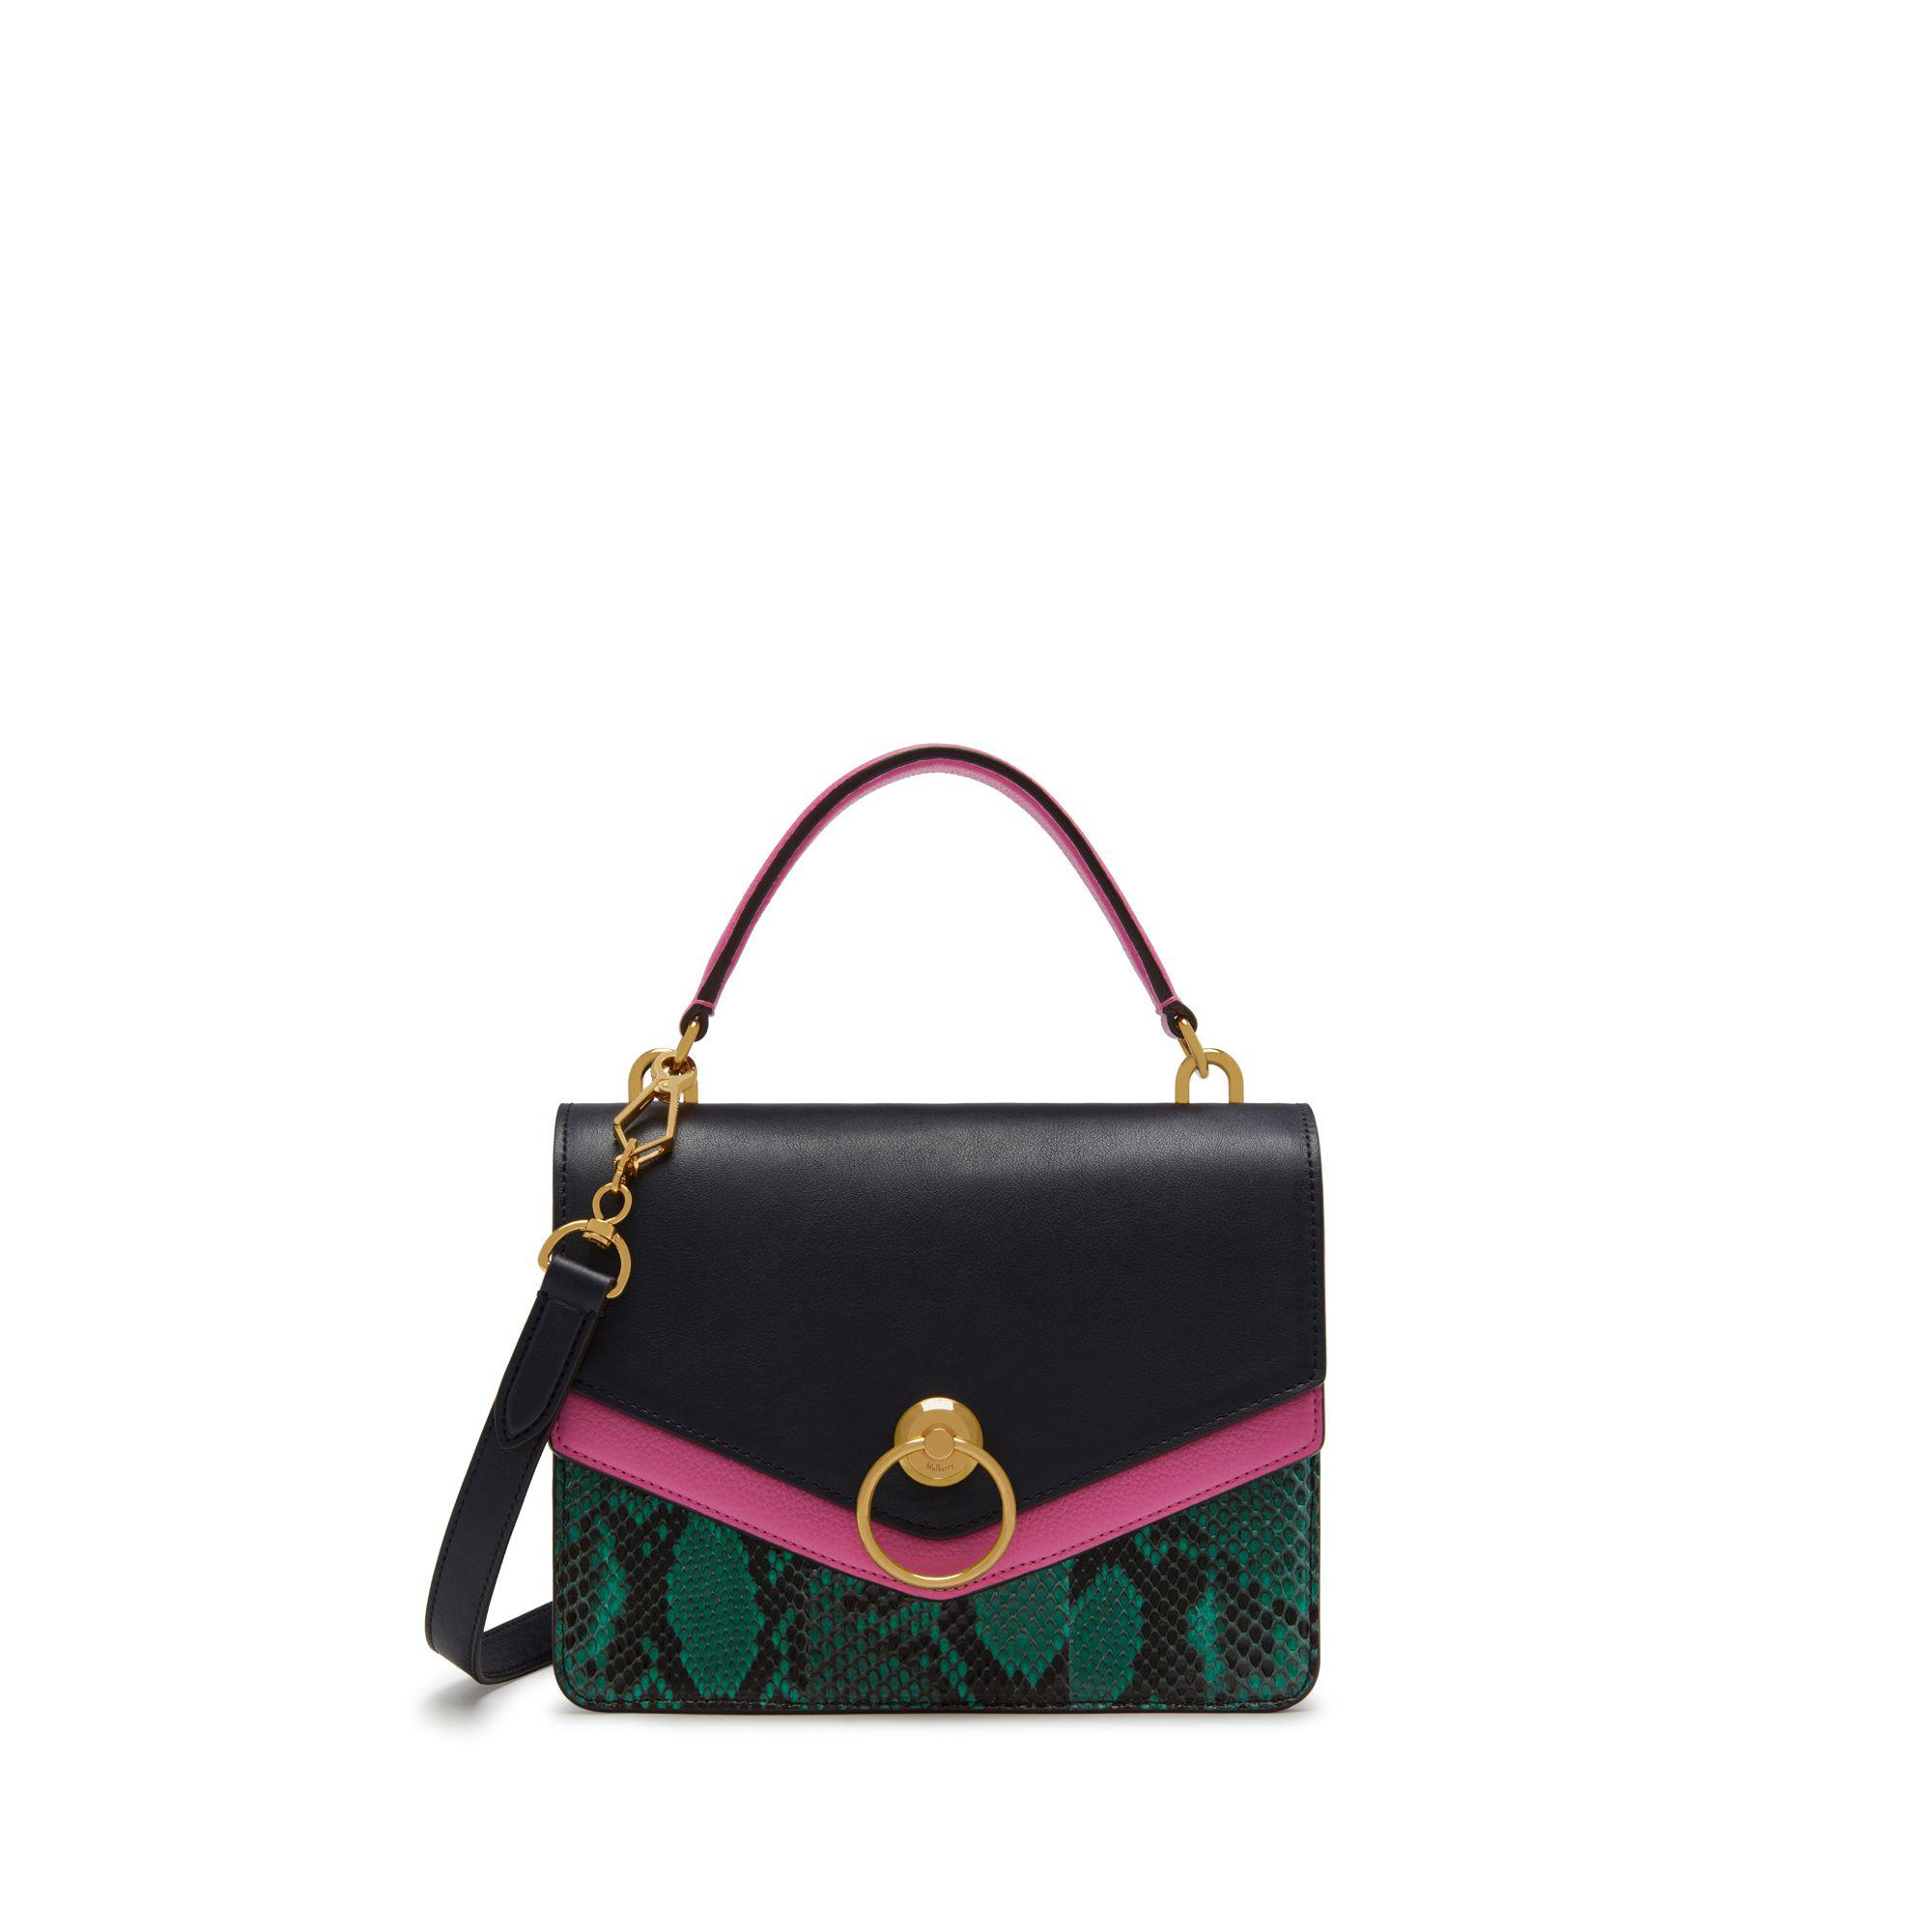 4ba27386e5 Mulberry Harlow Satchel In Viridian Green, Raspberry Pink And ...